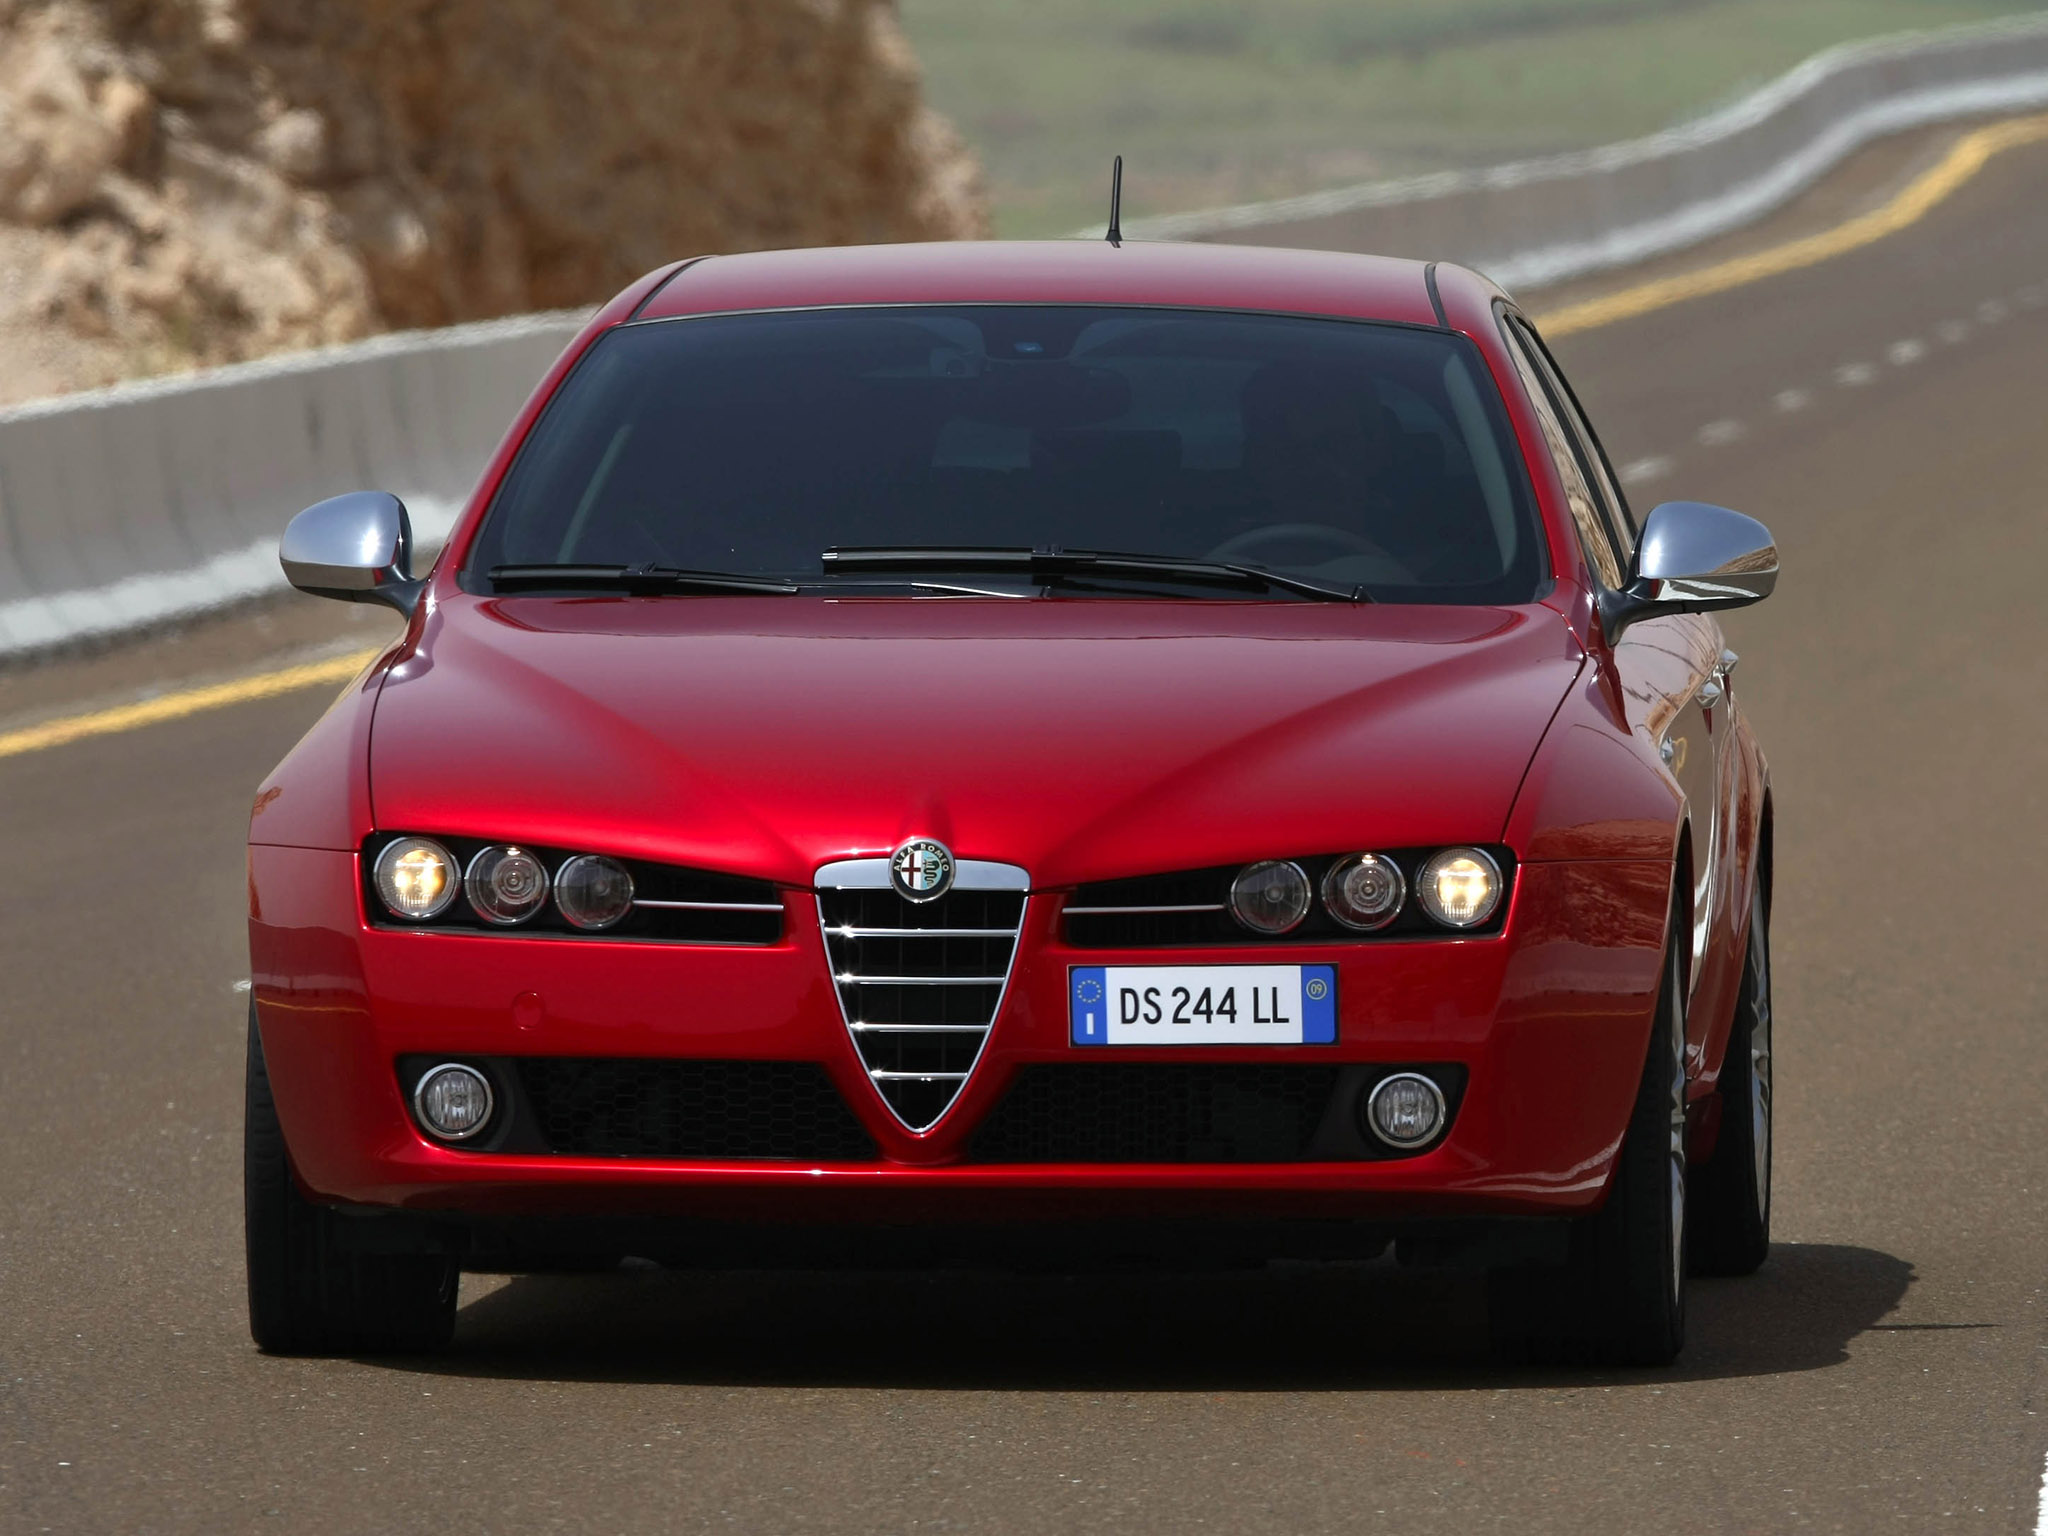 alfa romeo 159 sw 2009 alfa romeo 159 sw 2009 photo 13 car in pictures car photo gallery. Black Bedroom Furniture Sets. Home Design Ideas